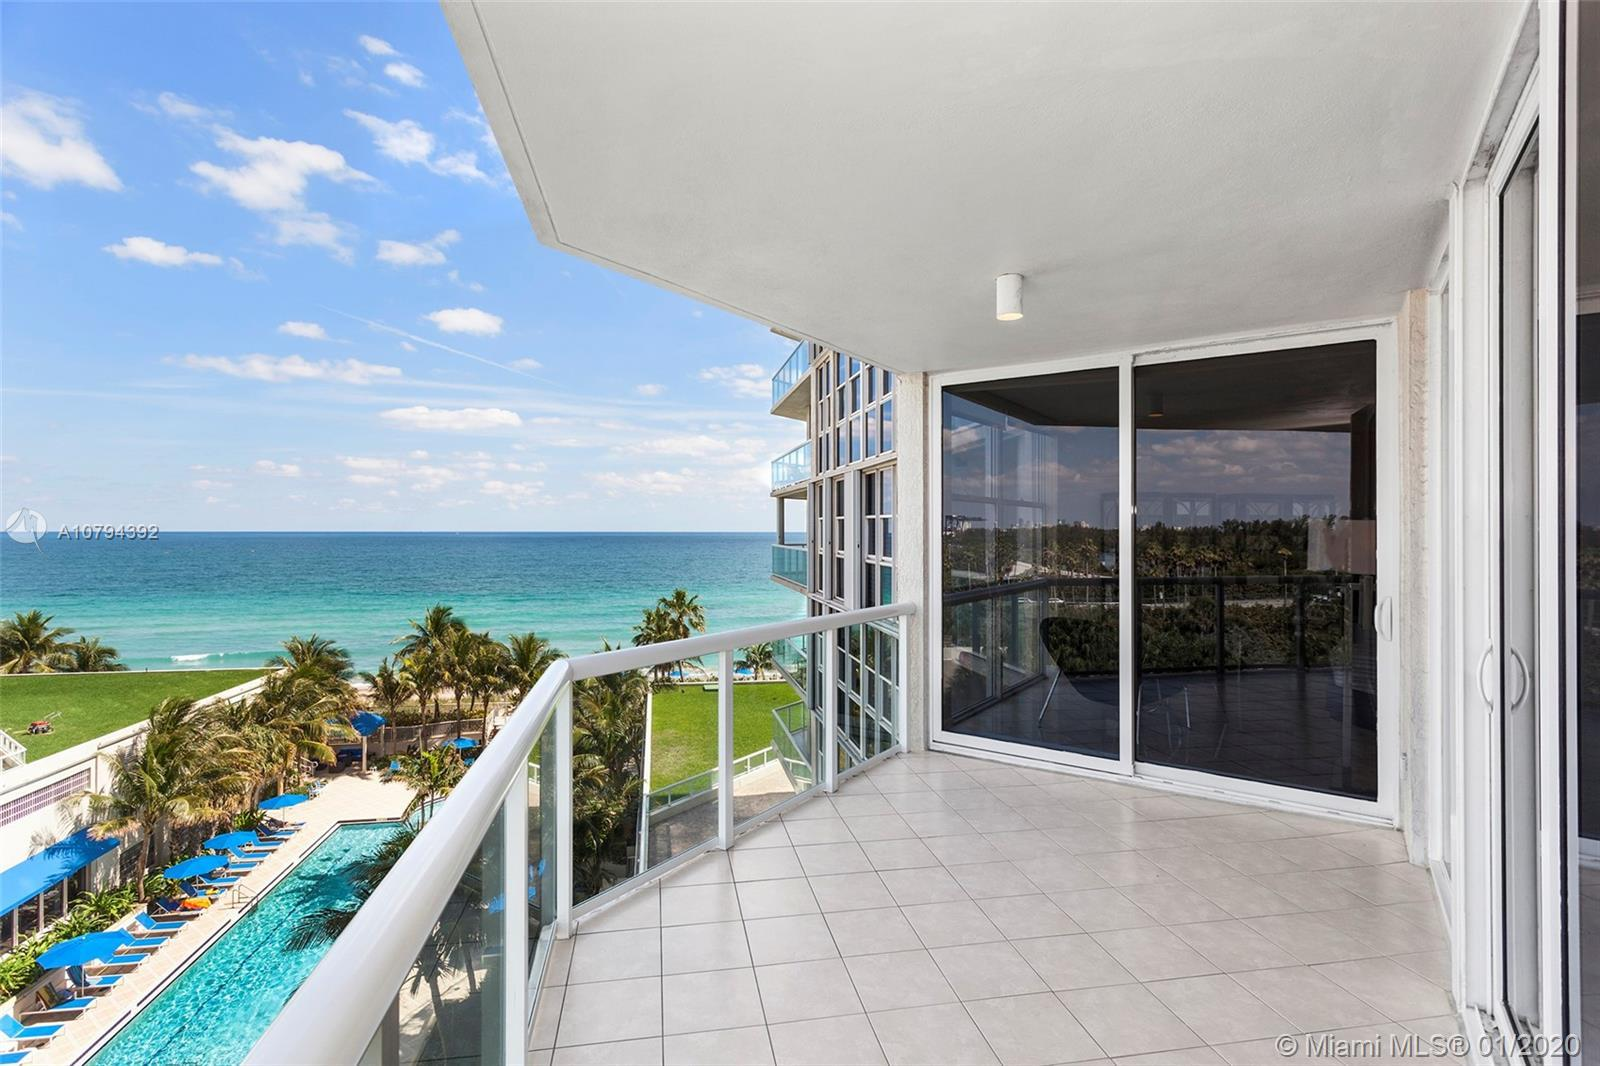 Enjoy ocean and intracoastal views from this spacious 2bed/2.5 Bath 2,025 Sq. Ft. corner unit at Ren